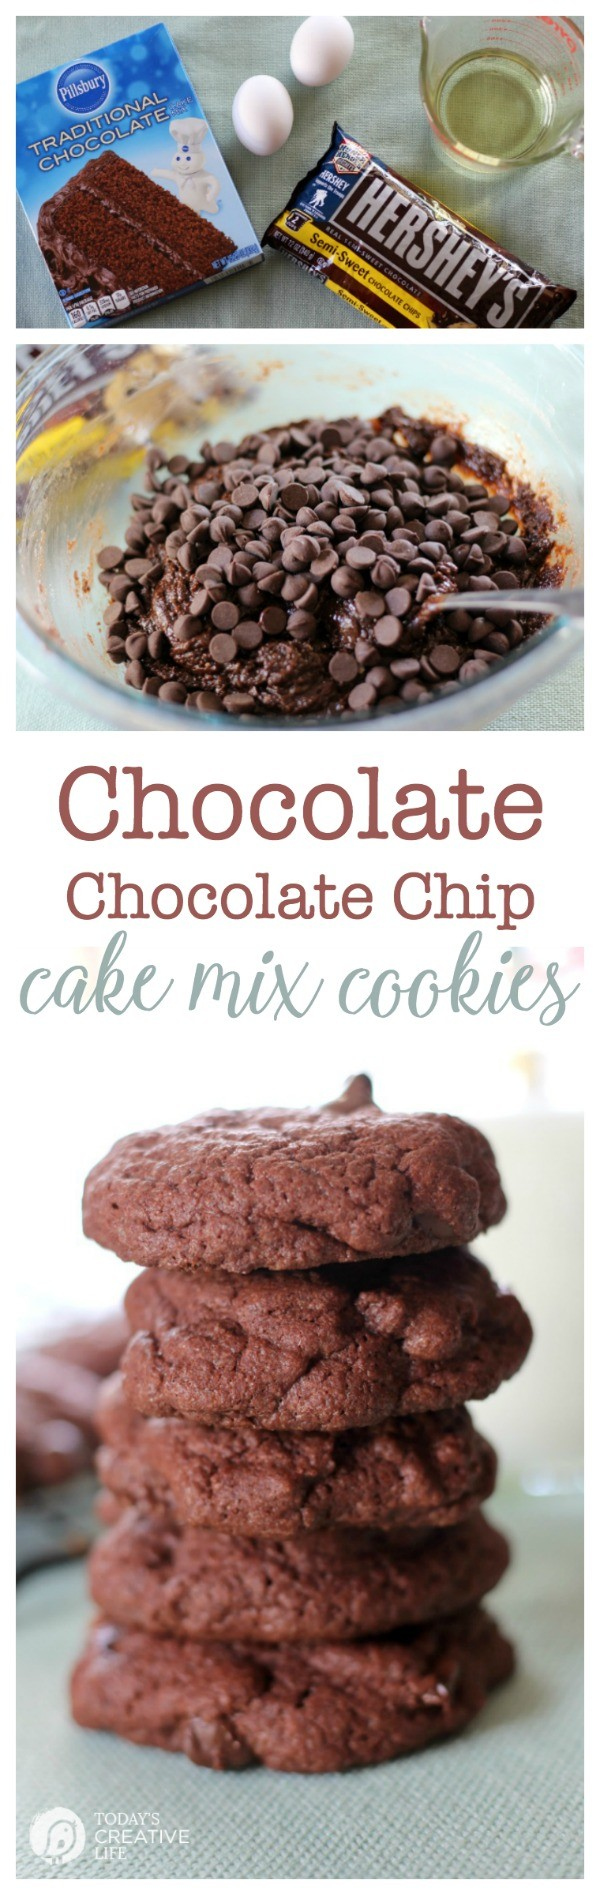 titled photo collage (and shown): Double Chocolate Cake Mix Cookies